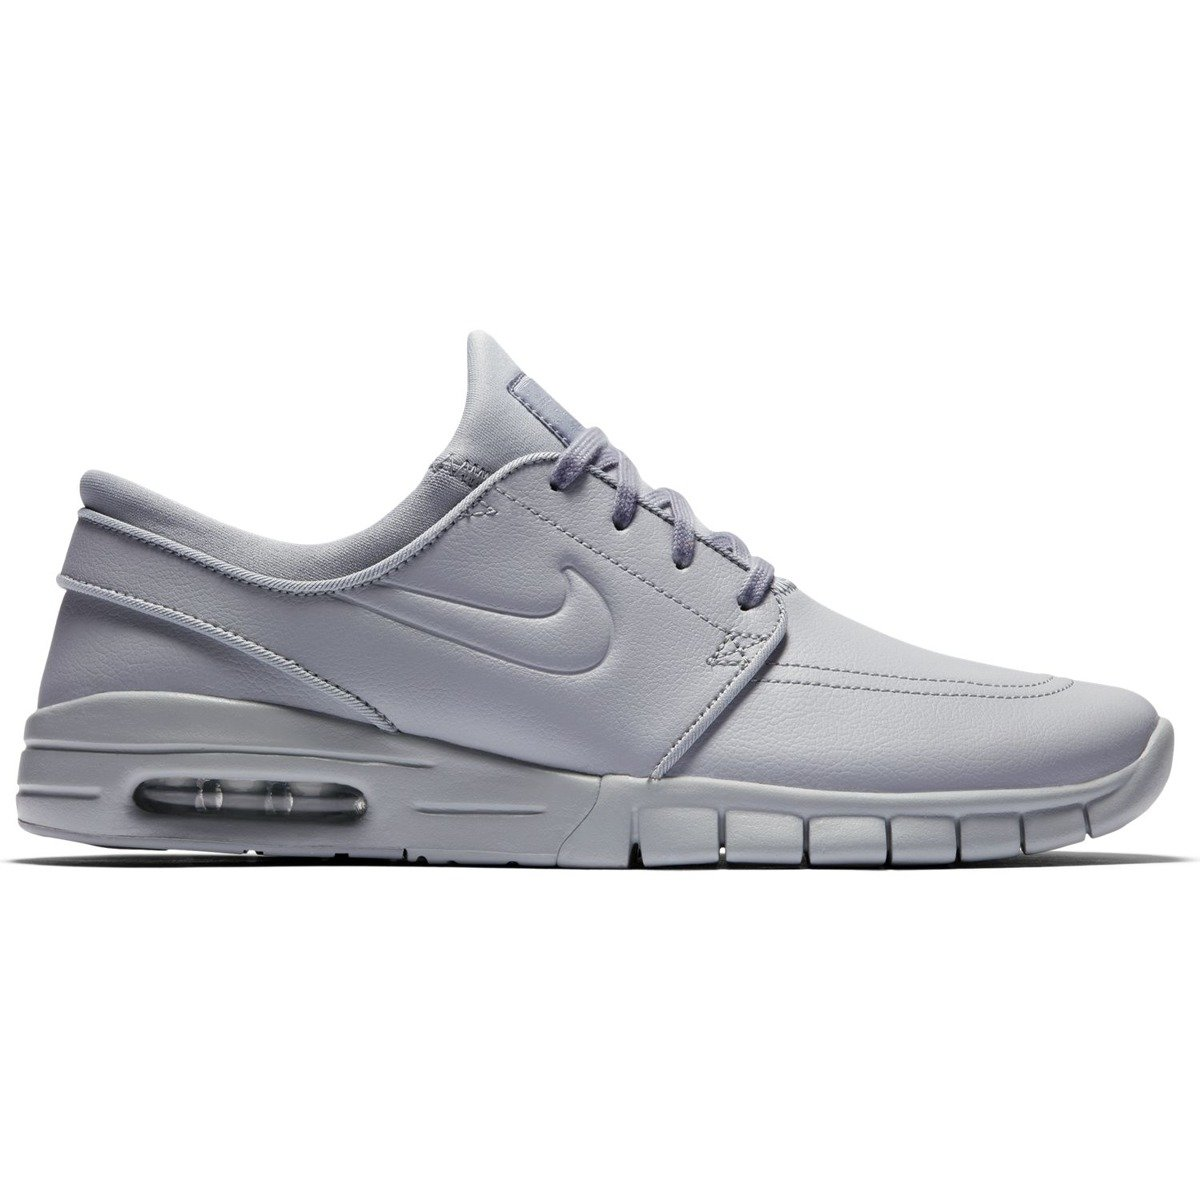 info for 7ad0f af763 shoes nike stefan janoski max l skateboarding shoe wolf grey wolf grey-mtlc  pewter grey   Shoes   Nike SB Shoes   nike janoski SALE   Sale 50% -70%    Shoes ...